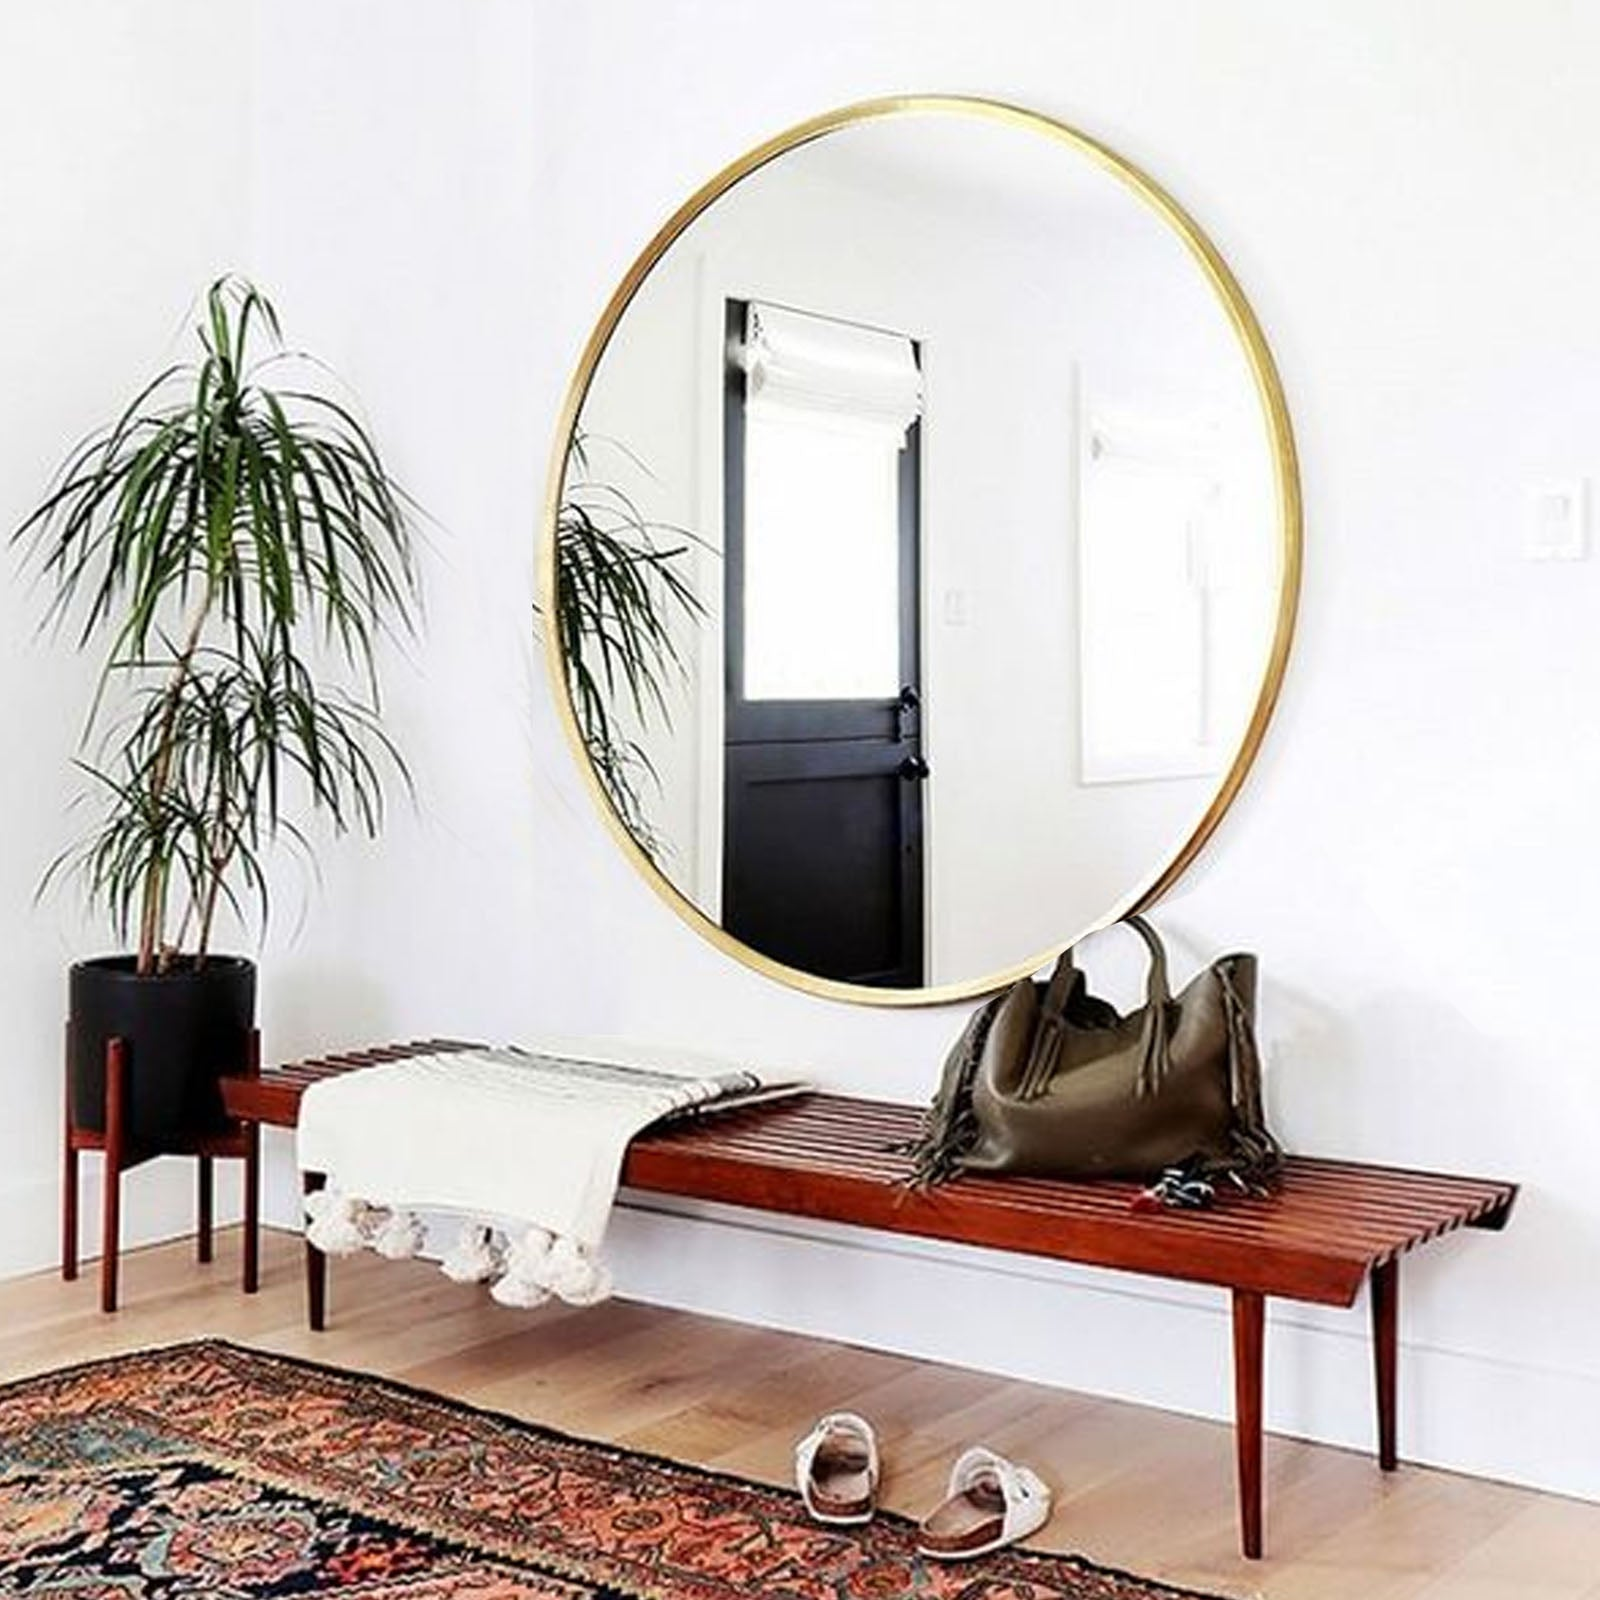 Mid century French Style Mirror  OA-5874M-G -  مرآة على الطراز الفرنسي ميد سينشري - Shop Online Furniture and Home Decor Store in Dubai, UAE at ebarza